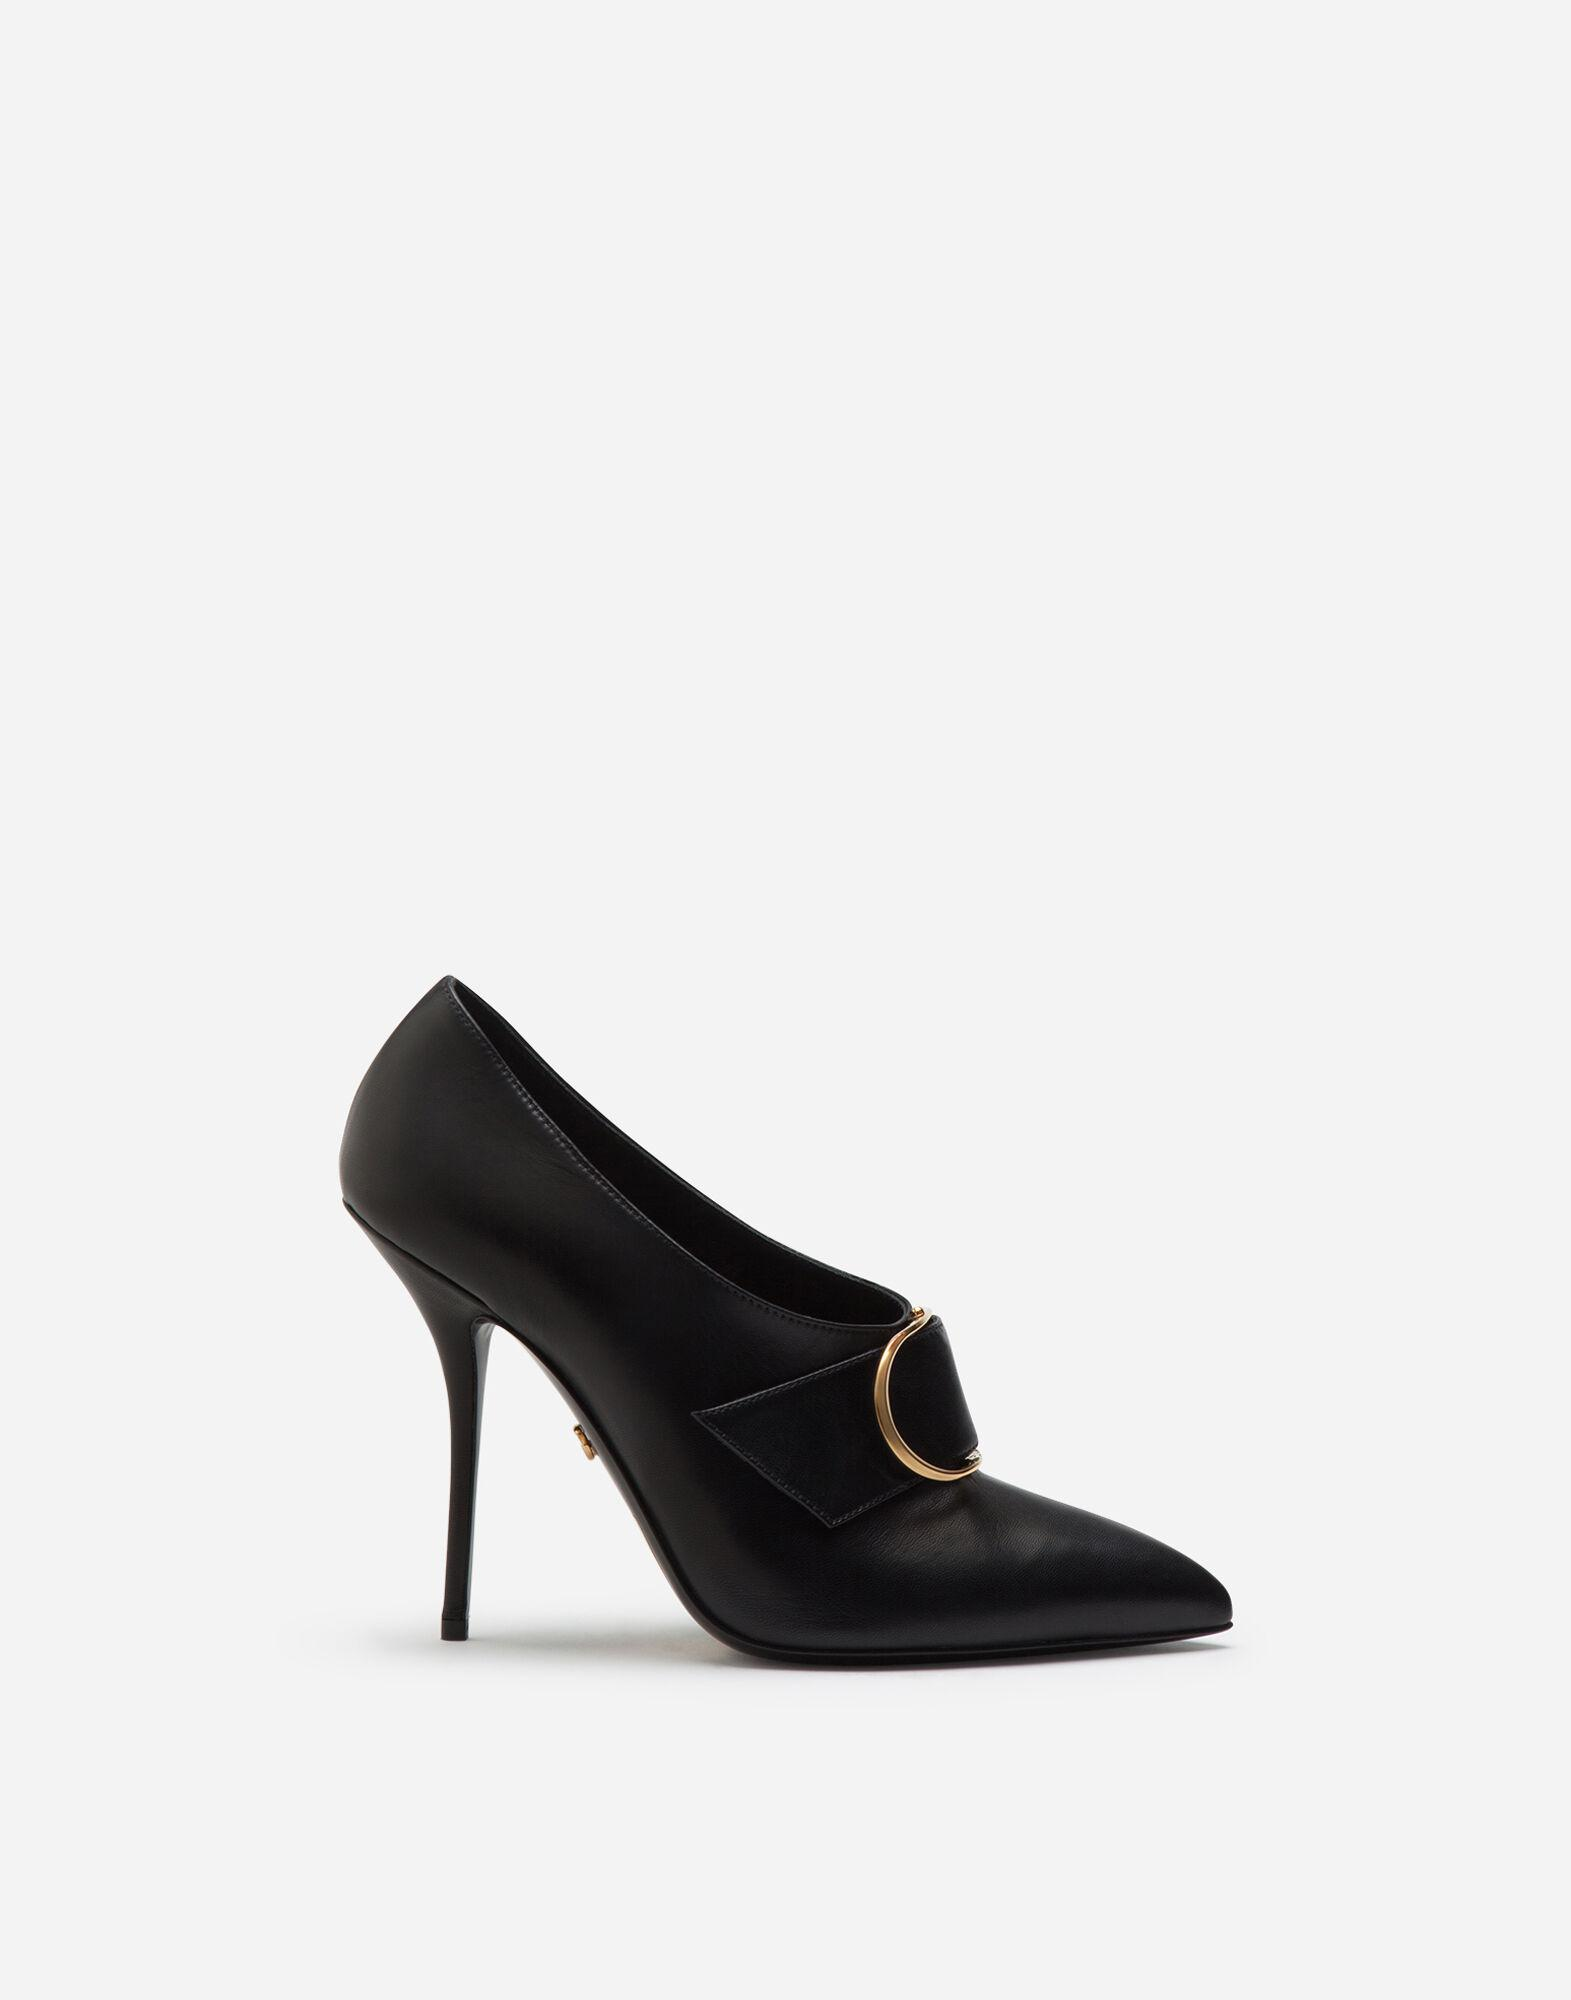 Calfskin pumps with decorative buckle